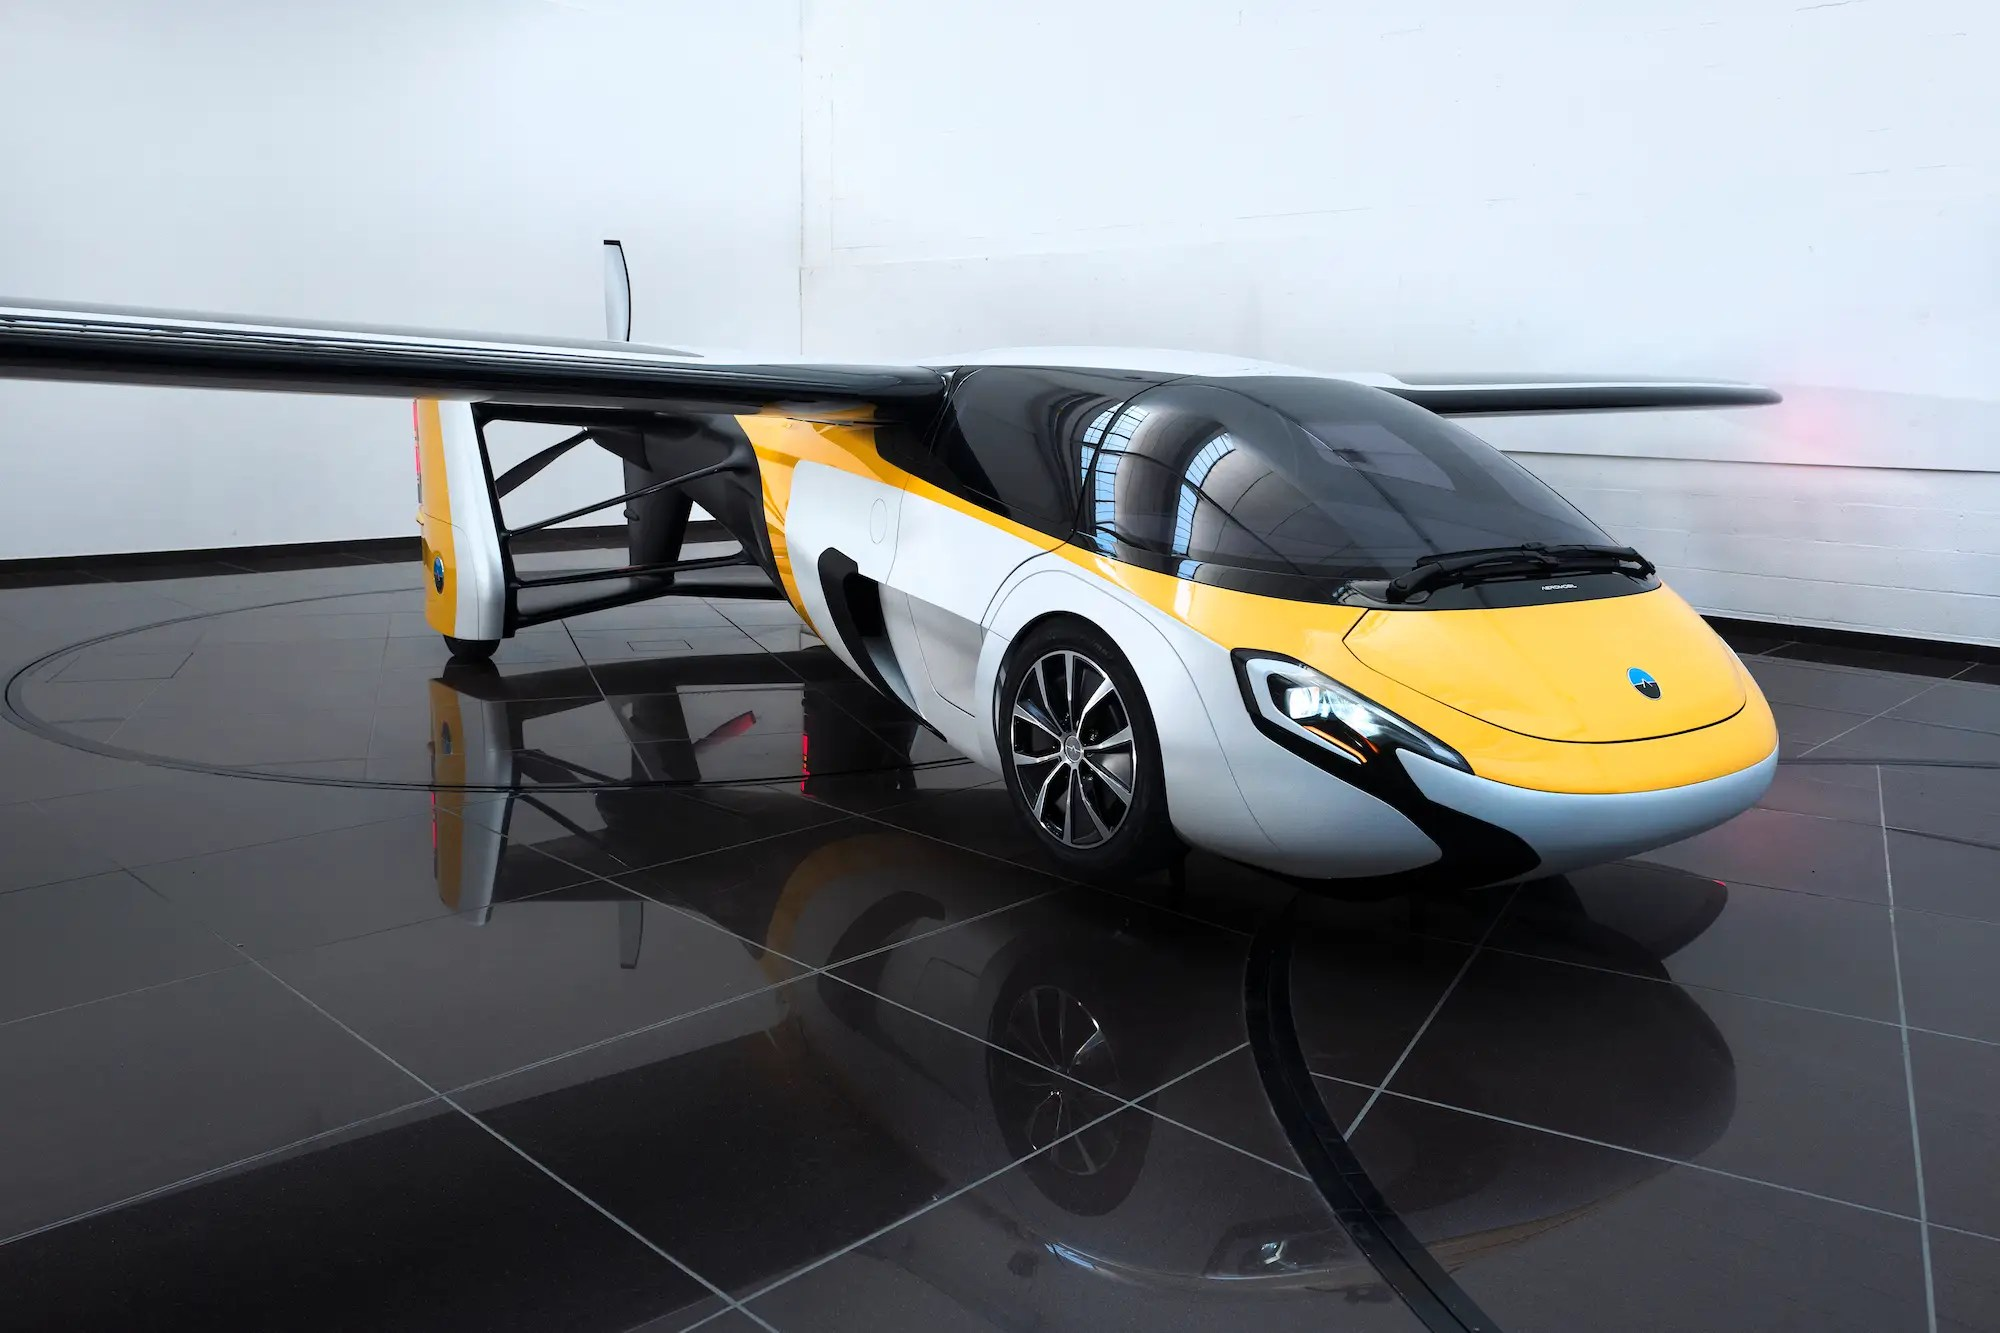 AeroMobil says the vehicle can transform into flight mode in less than 3 minutes. As a car, it has a top speed of 100 mph (160 kph) and can drive for 434 miles (700 km).